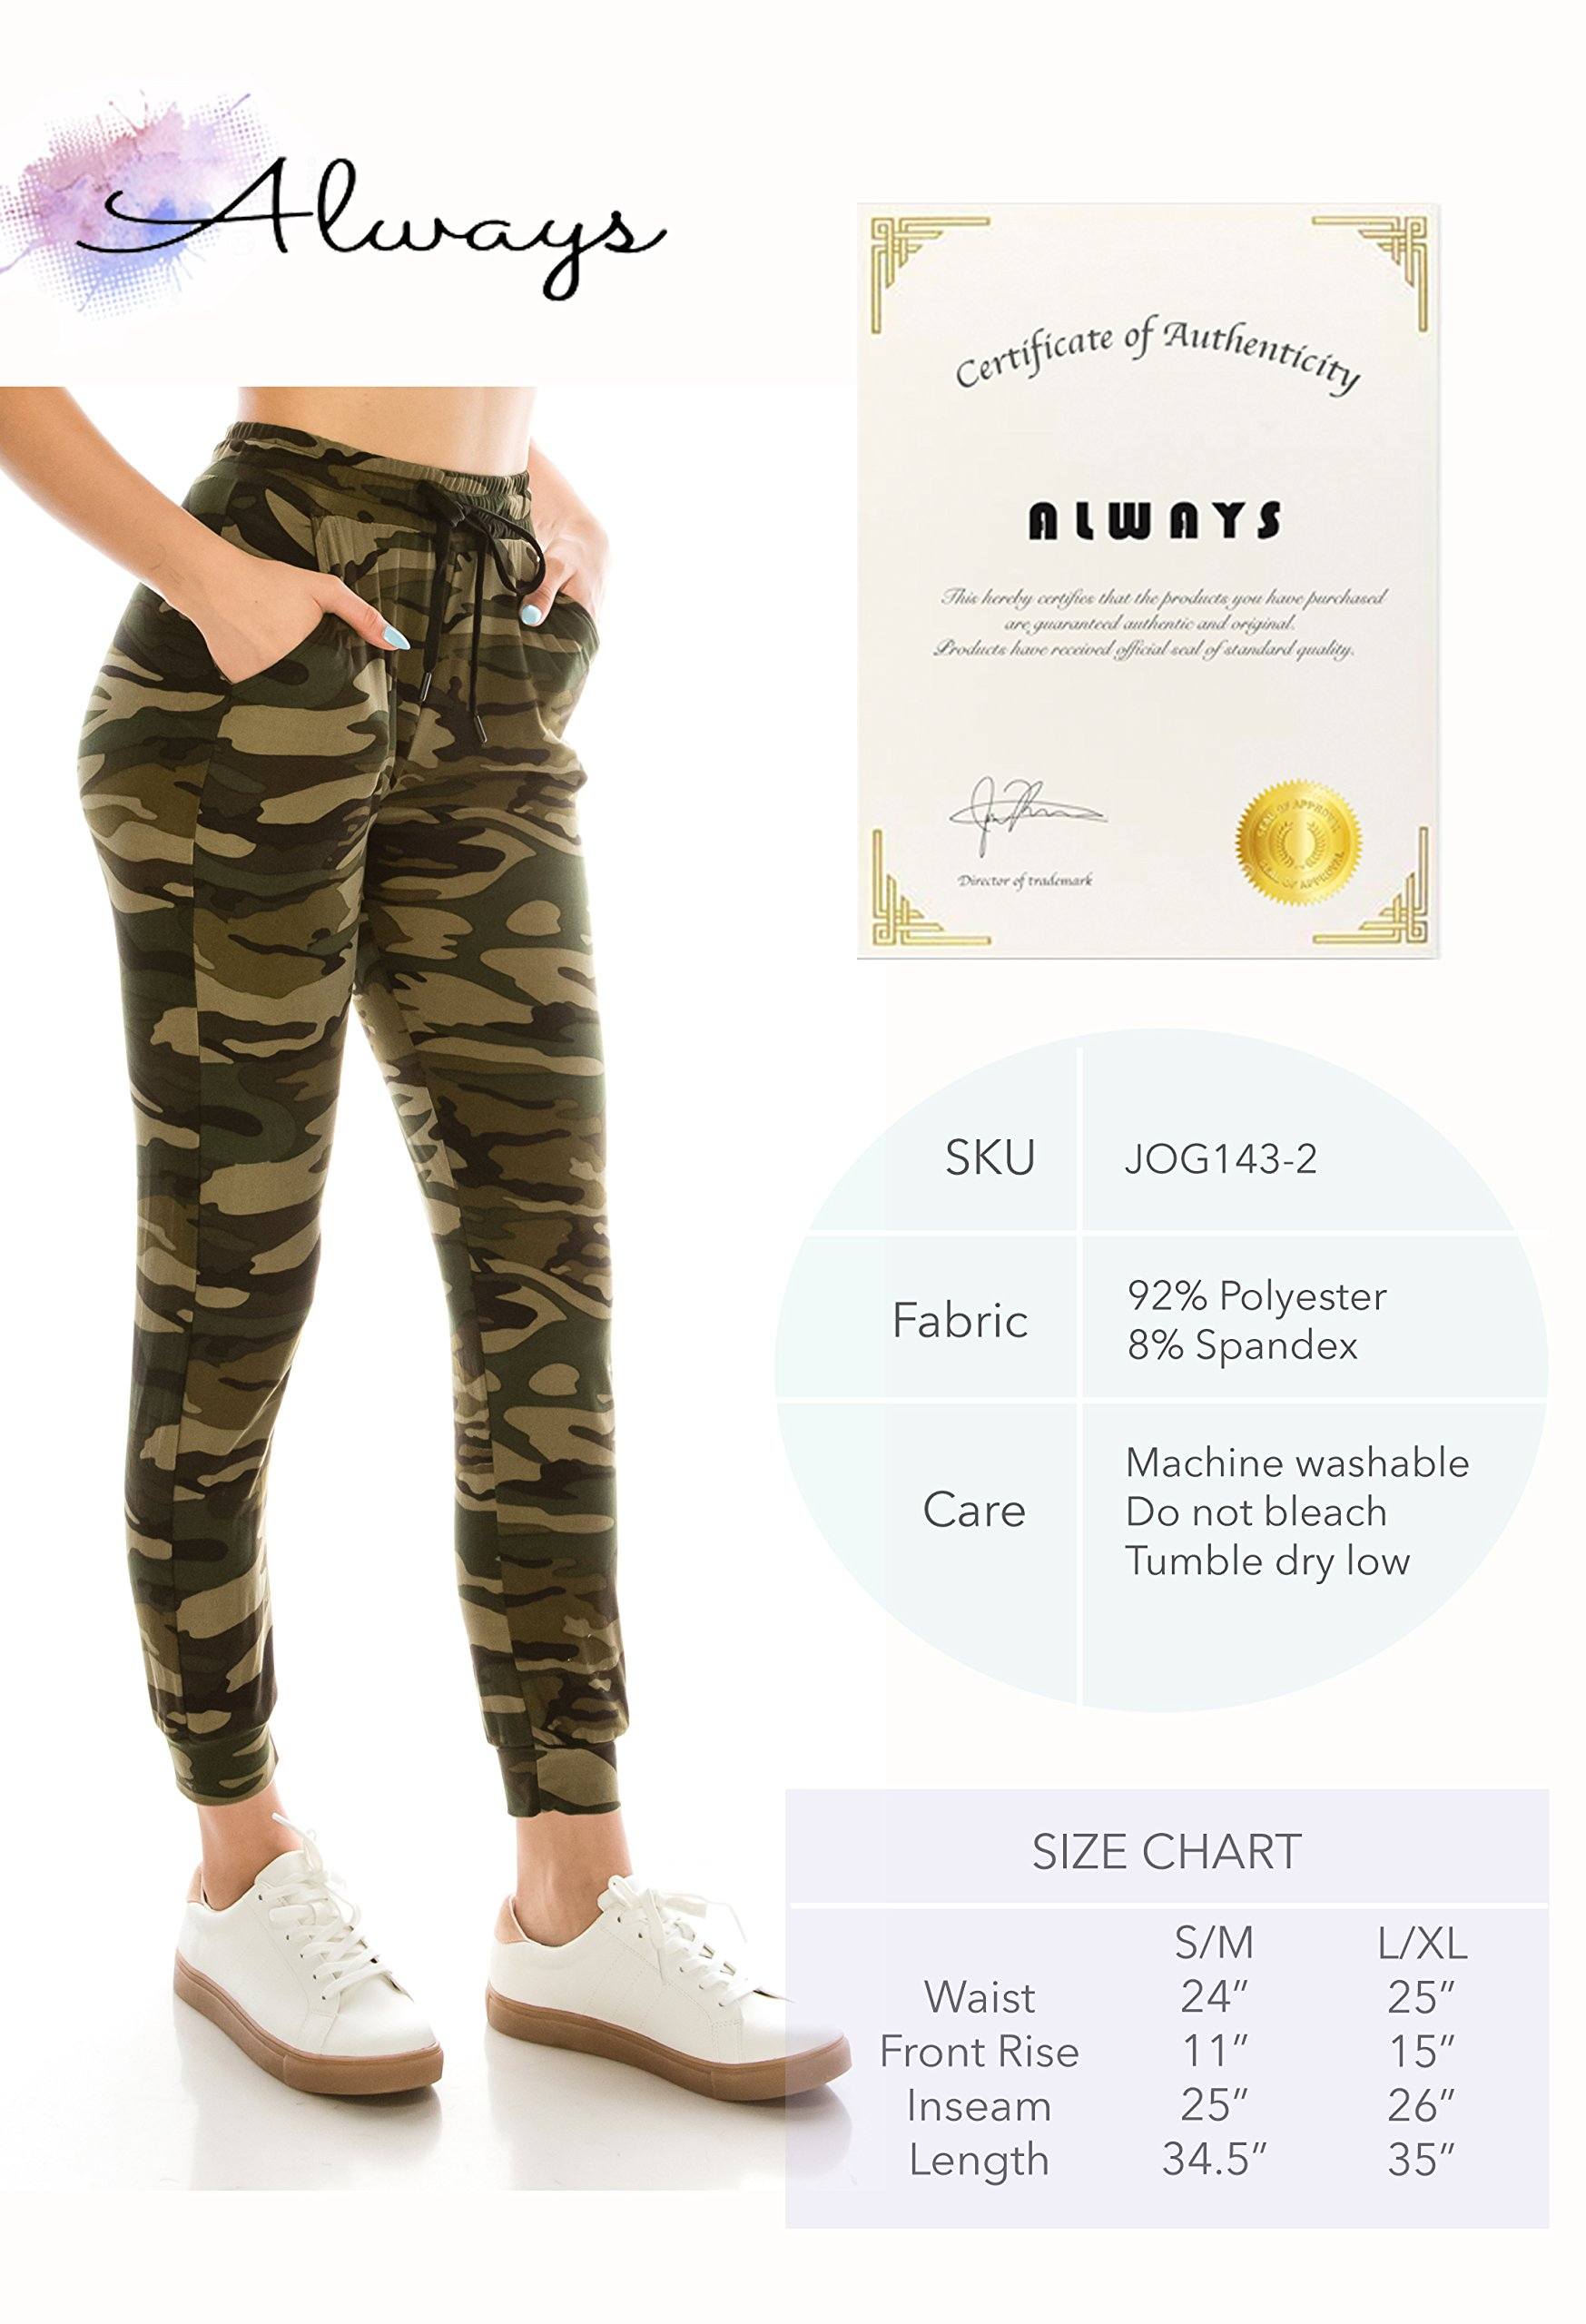 ALWAYS Women Drawstrings Jogger Sweatpants - Skinny Fit Premium Soft Stretch Camo Military Army Pockets Pants S/M by ALWAYS (Image #6)